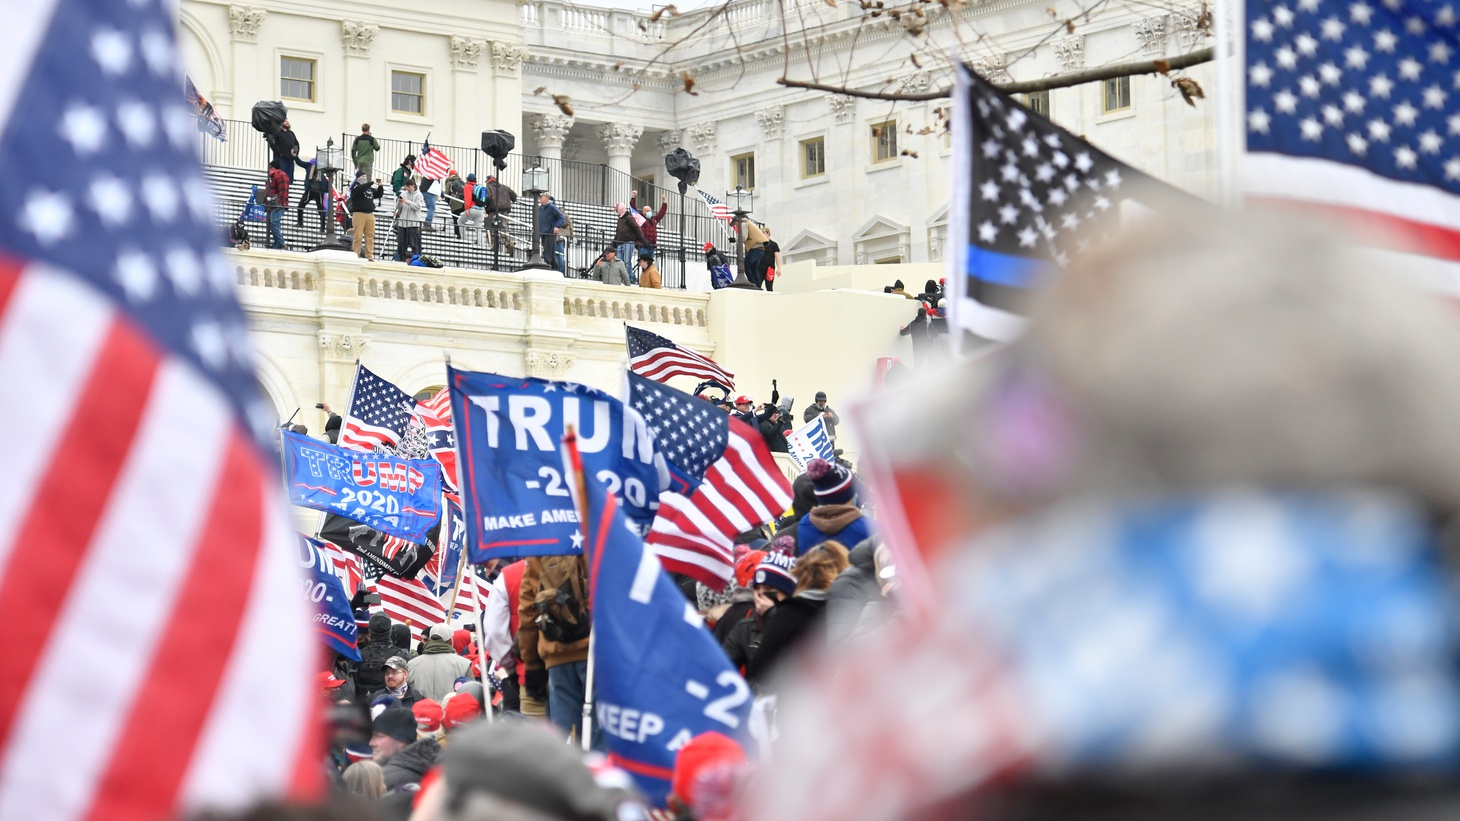 Riots at the US Capitol, in Washington D.C., January 6th.